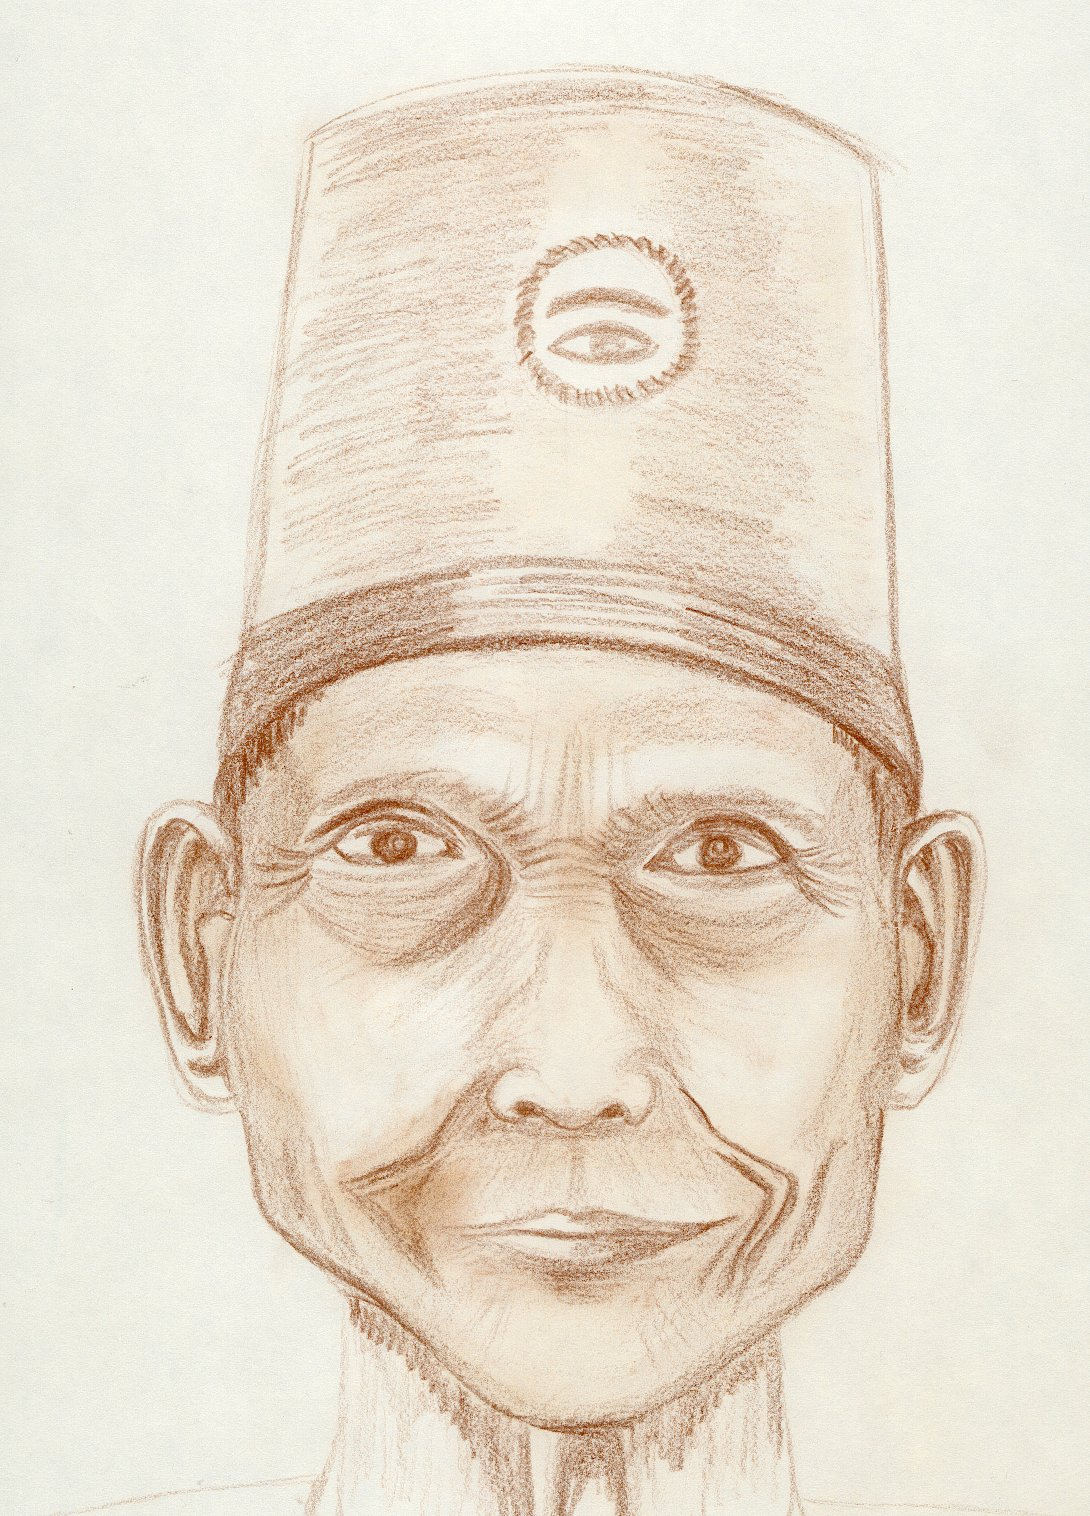 pasportraitasiatique1.jpg